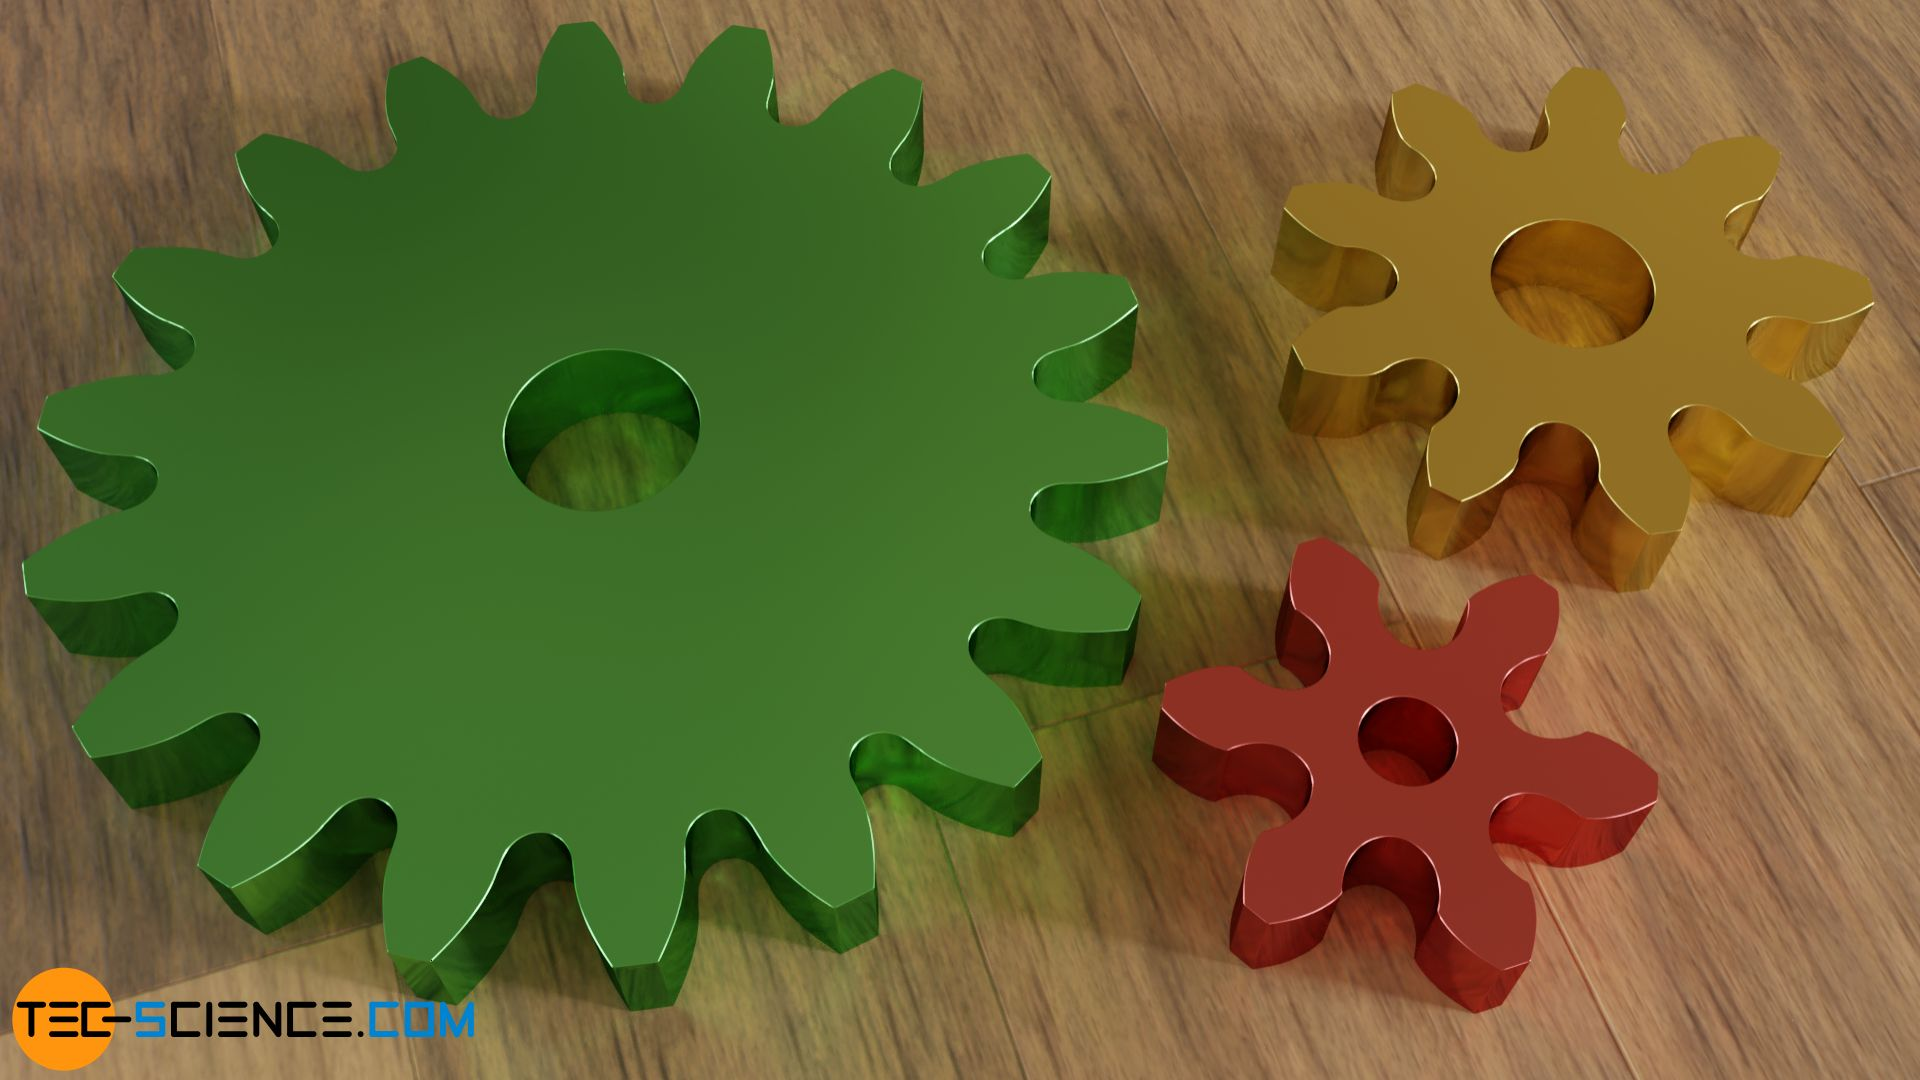 Gear without undercut (green) and with undercut (yellow and red)